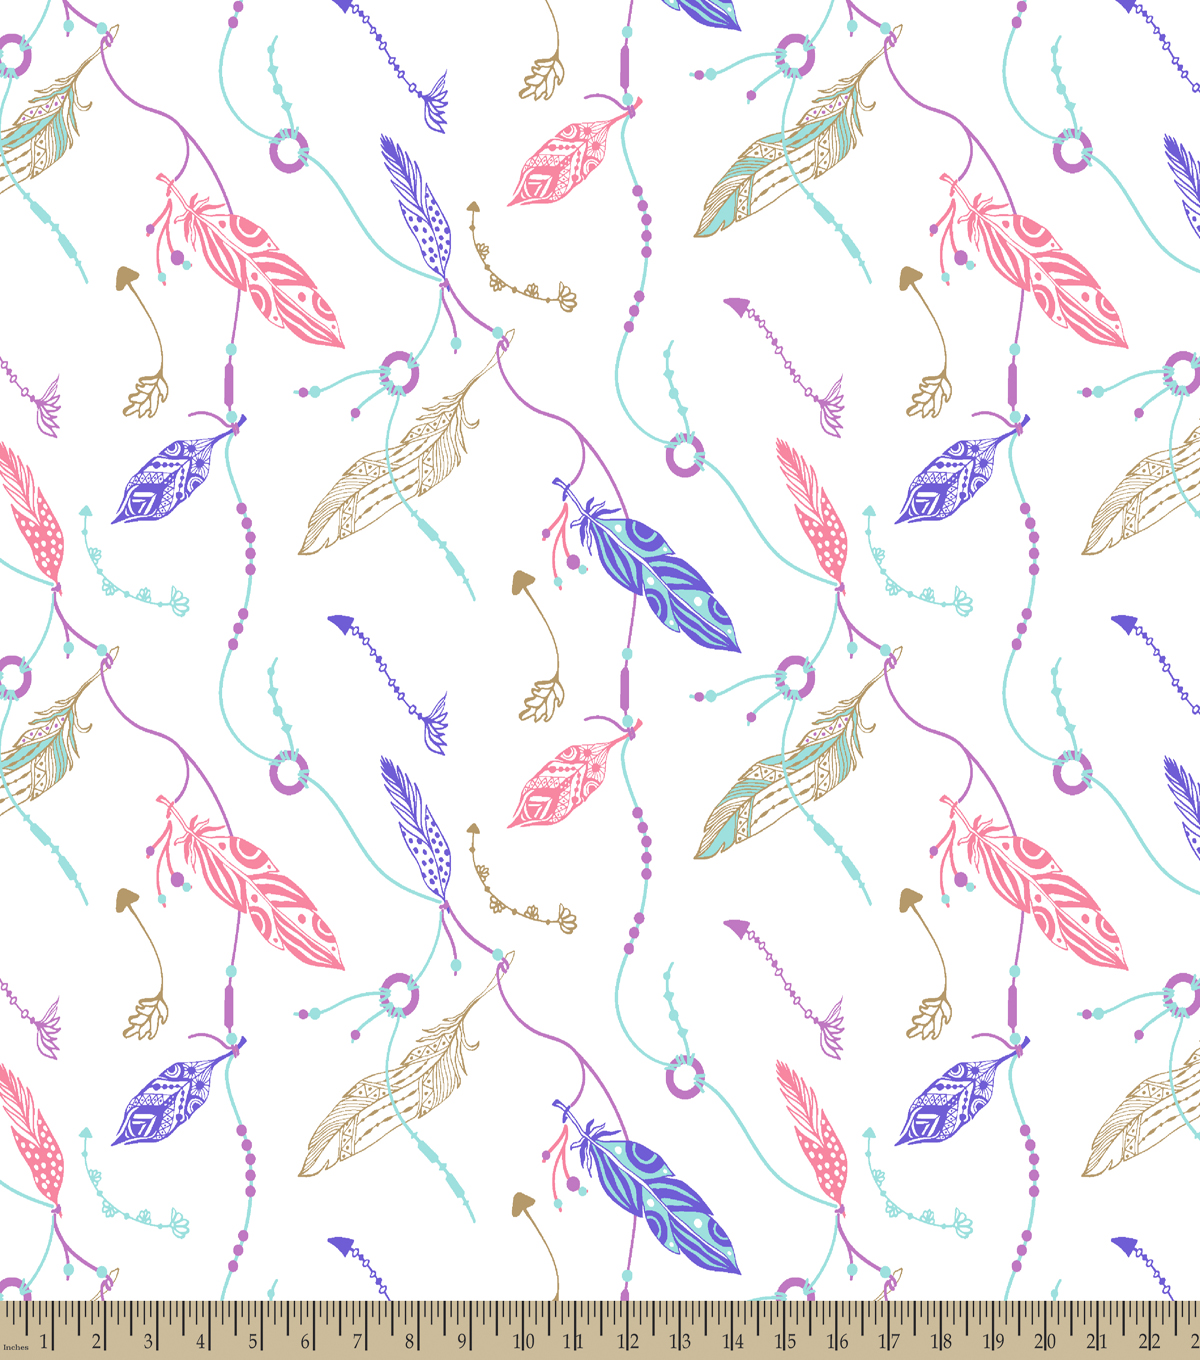 Feathers & Arrows Print Fabric